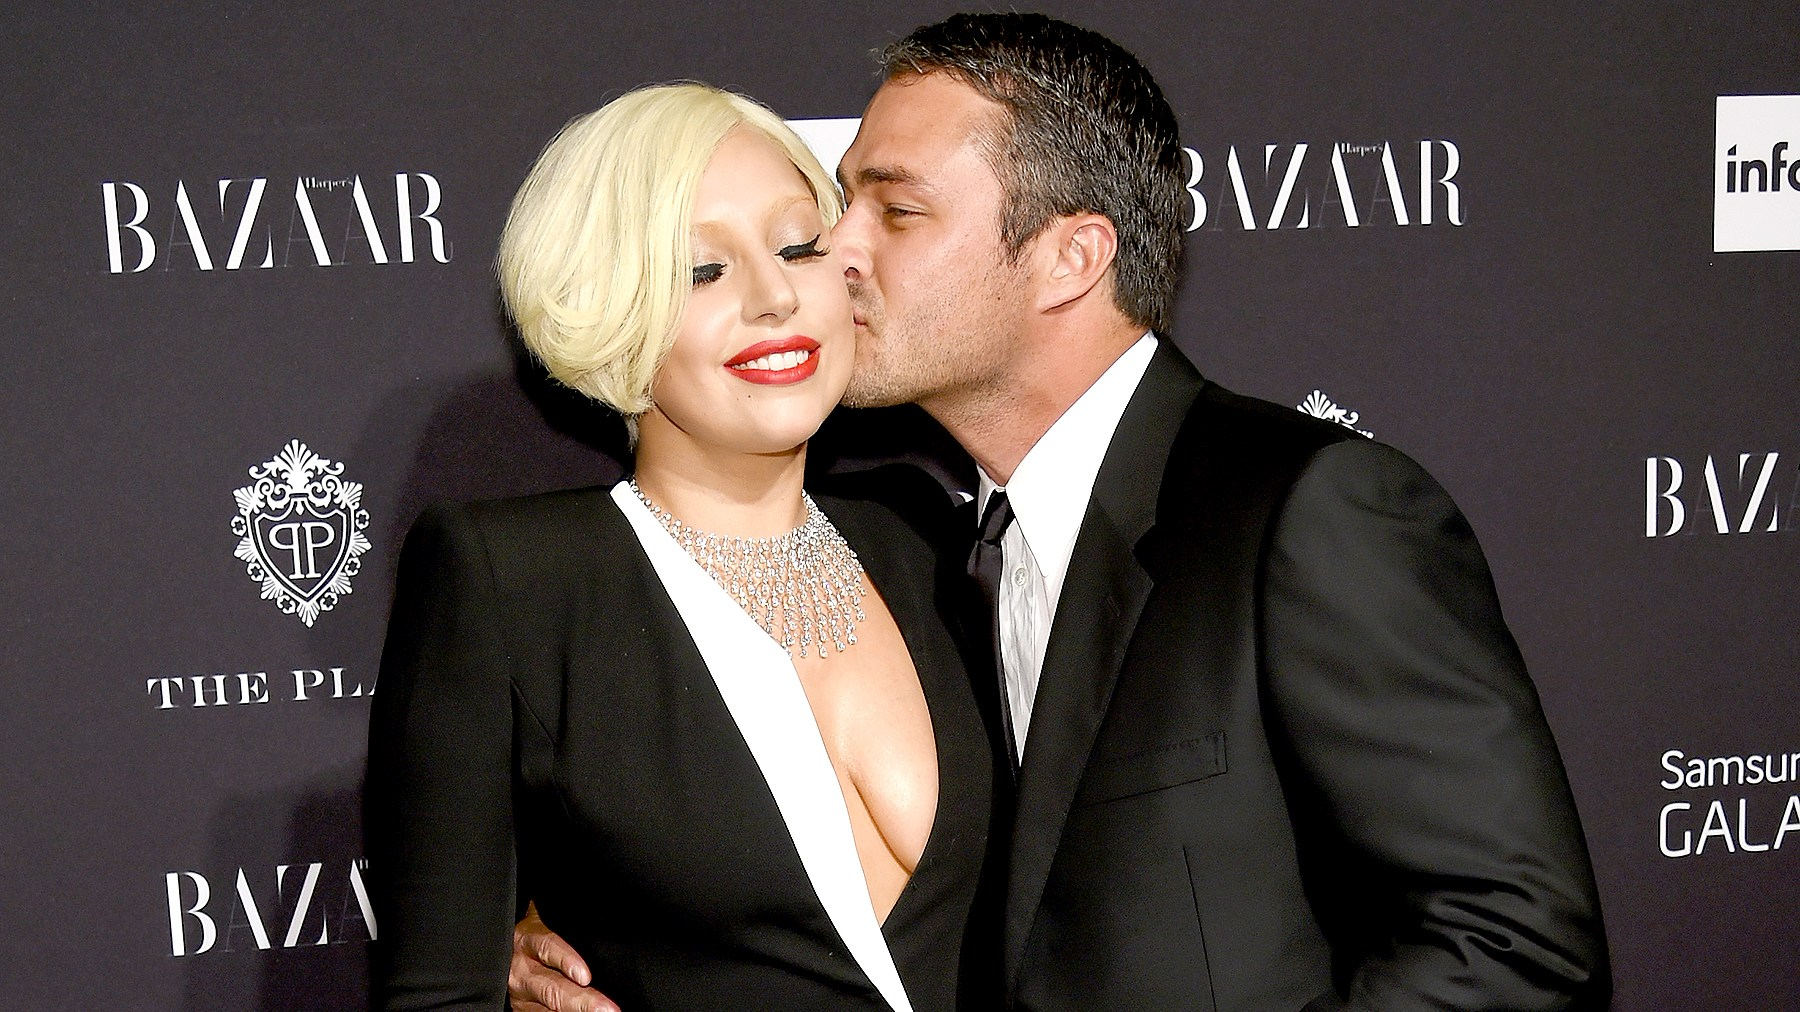 Lady Gaga and Taylor Kinney attend Samsung Galaxy at Harper's Bazaar Celebrates Icons by Carine Roitfeld at the Plaza Hotel on Sept. 5, 2014. Dimitrios Kambouris/Getty Images for Samsung